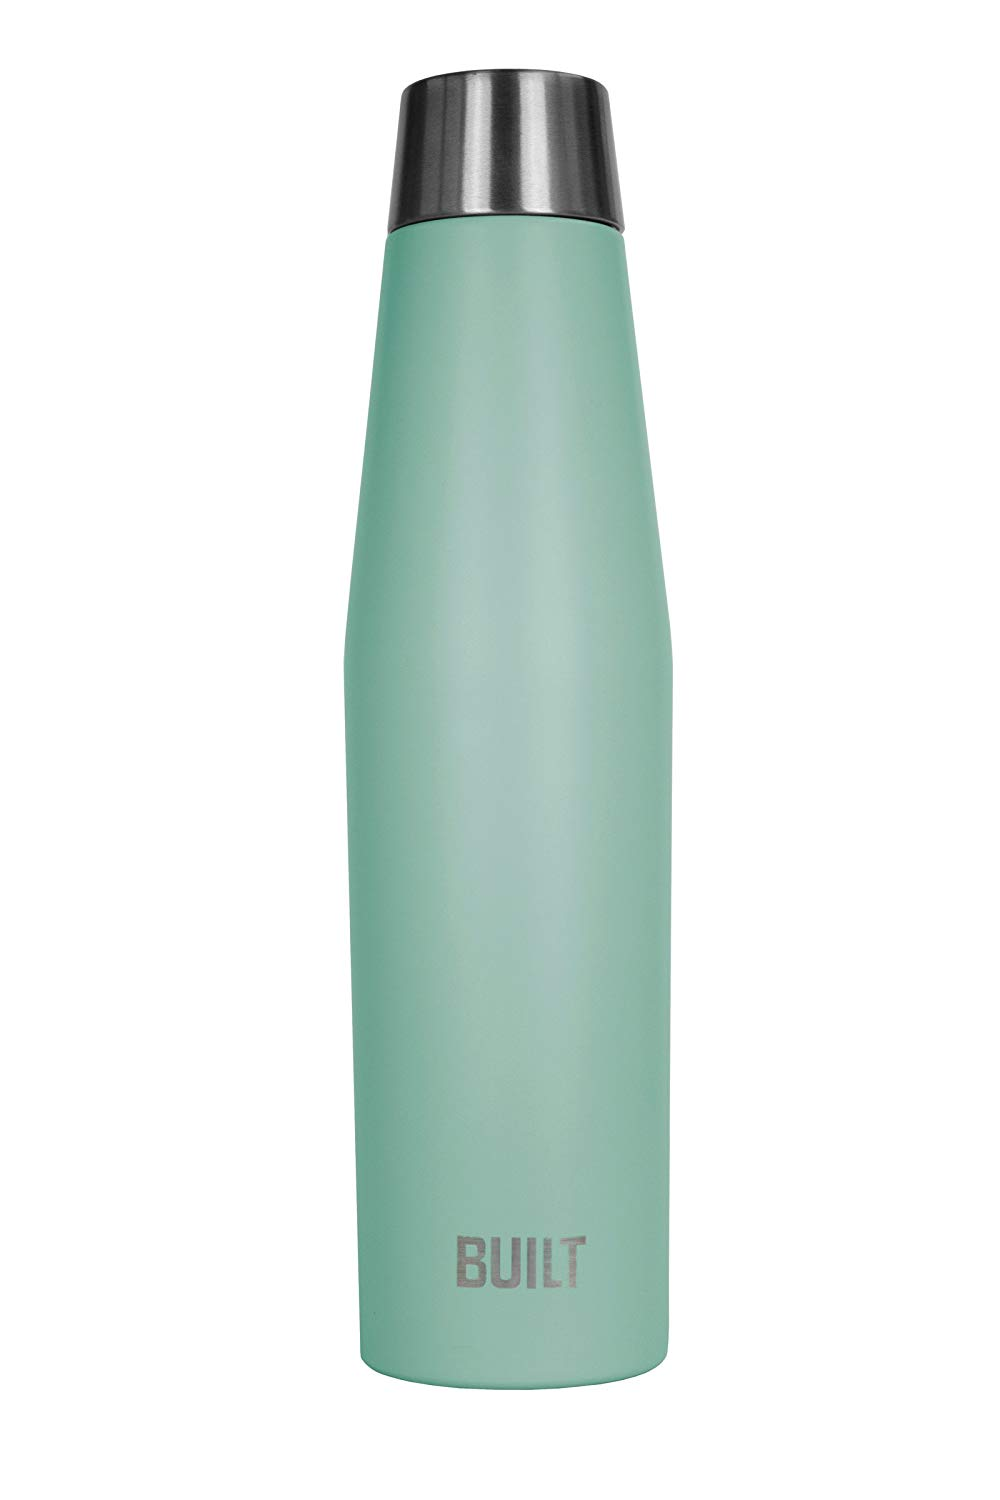 18. BUILT NY Perfect Seal Apex Vacuum Insulated Bottle - Encourage your friends and family to become more sustainably-friendly by gifting them this trendy water bottle with patented perfect-seal cap technology that locks the lid in place and creates a leak and spill-proof seal. Double-wall stainless steel, vacuum-sealed construction keeps drinks cold for 24 hours and hot for eight hours, making this bottle the perfect gym or walk around the block companion.